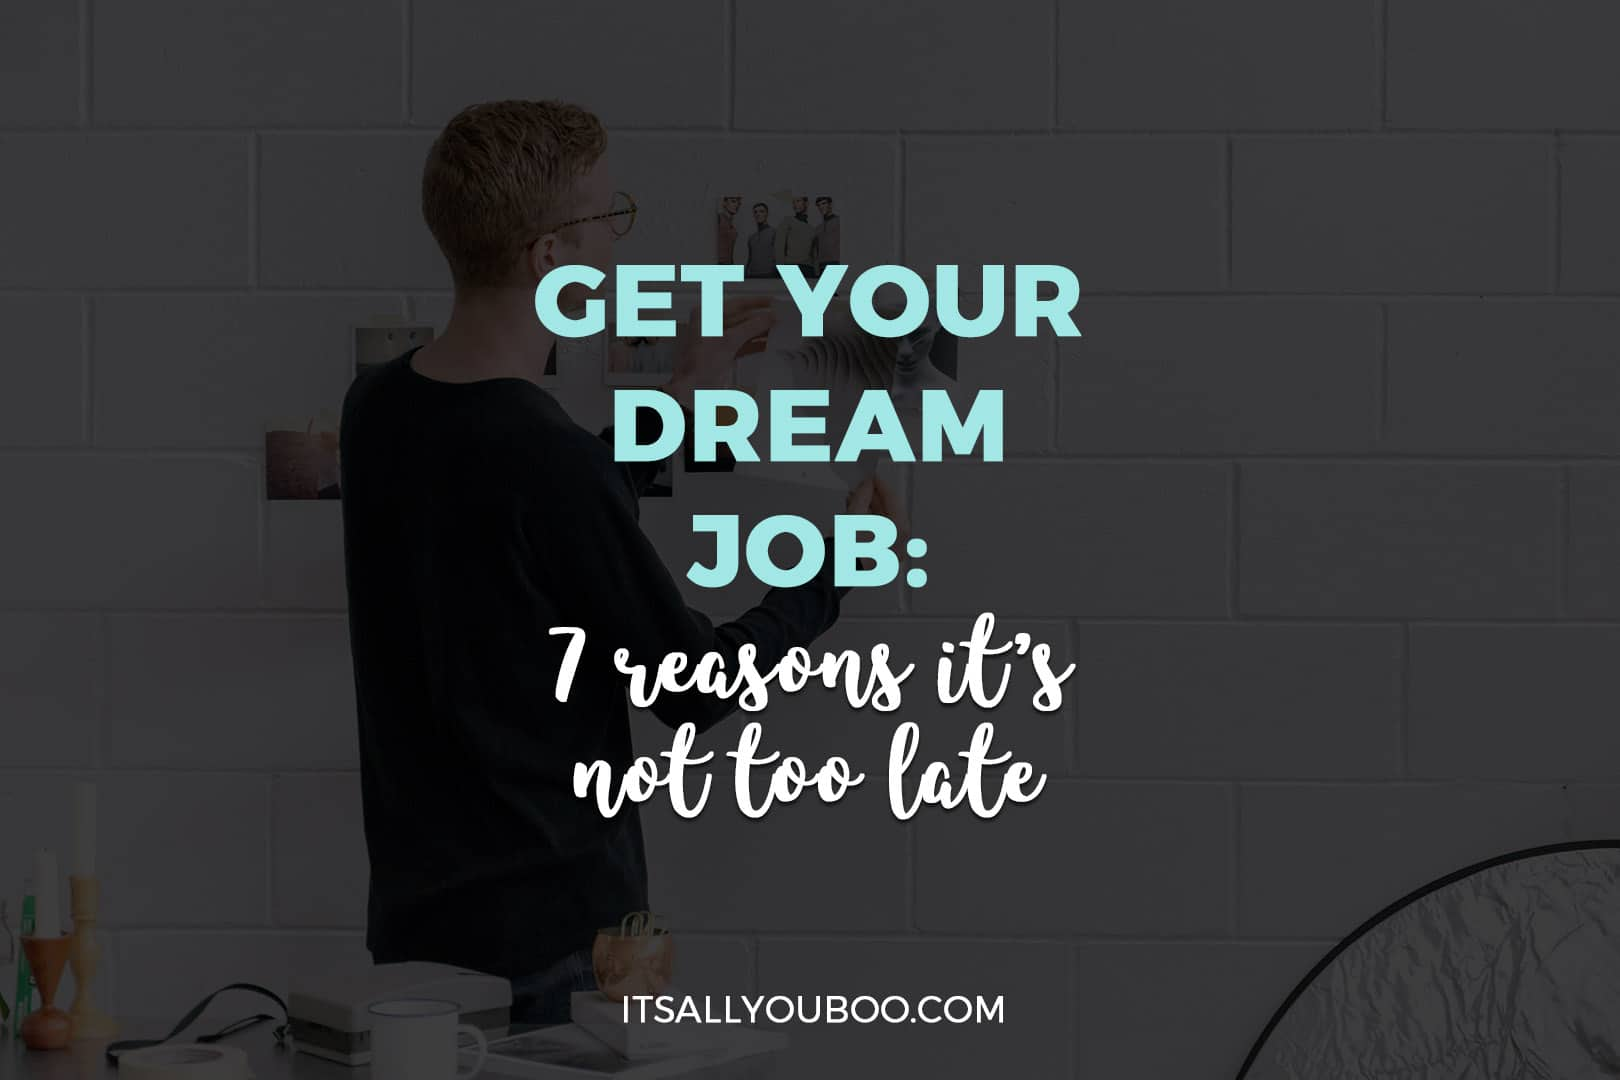 Get Your Dream Job: 7 Reasons it's Not Too Late